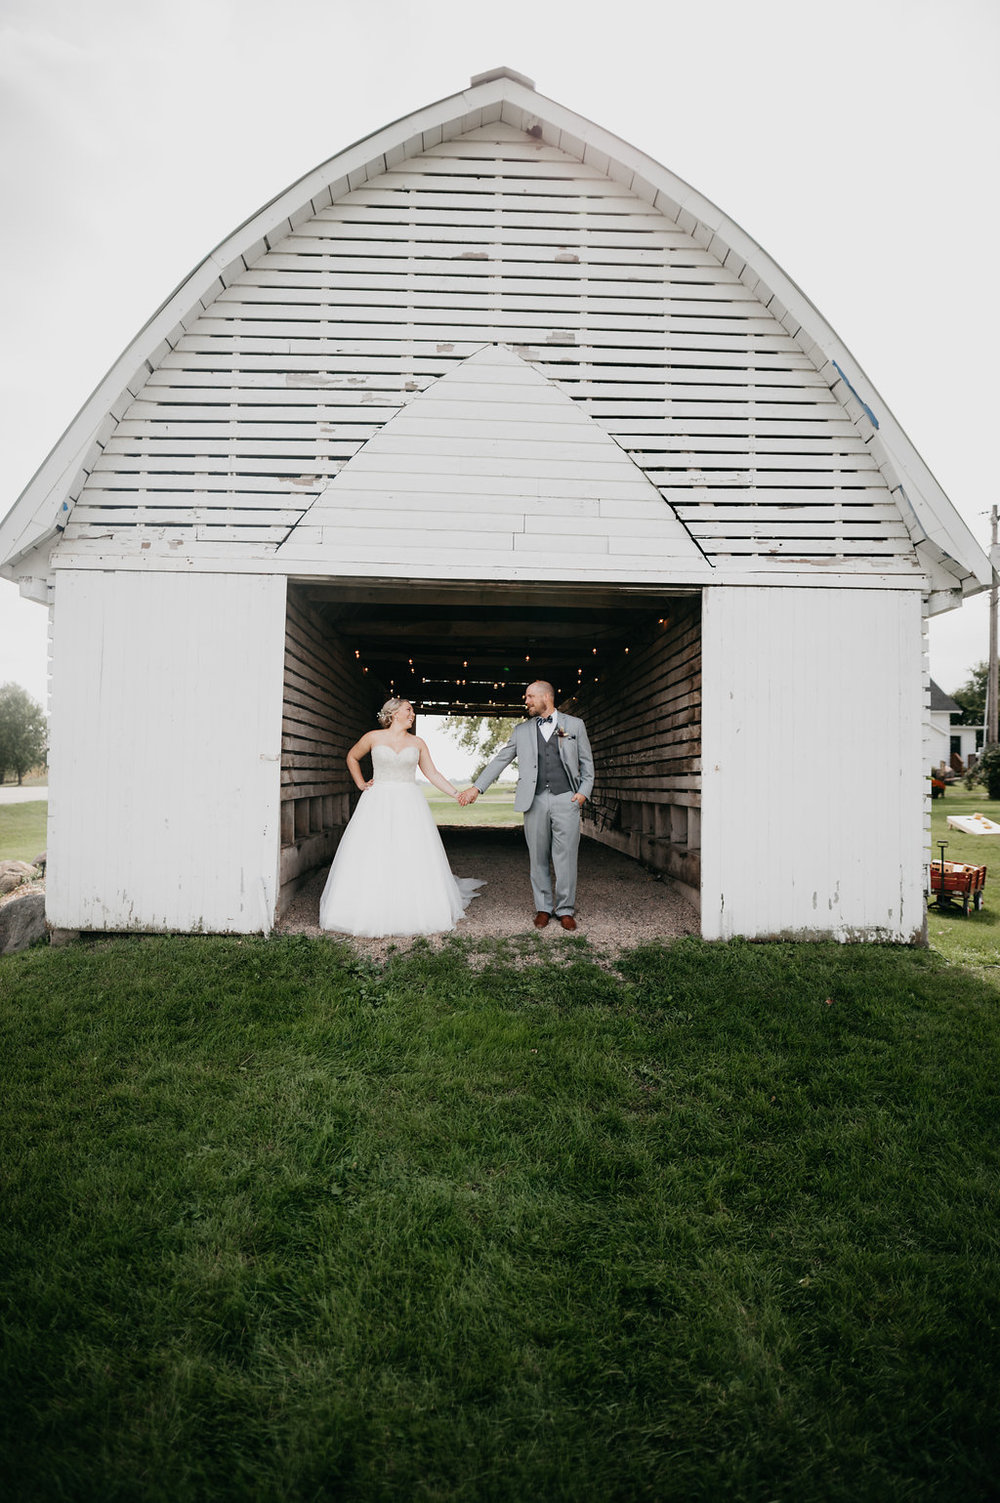 MPLS wedding photographer 56.jpg